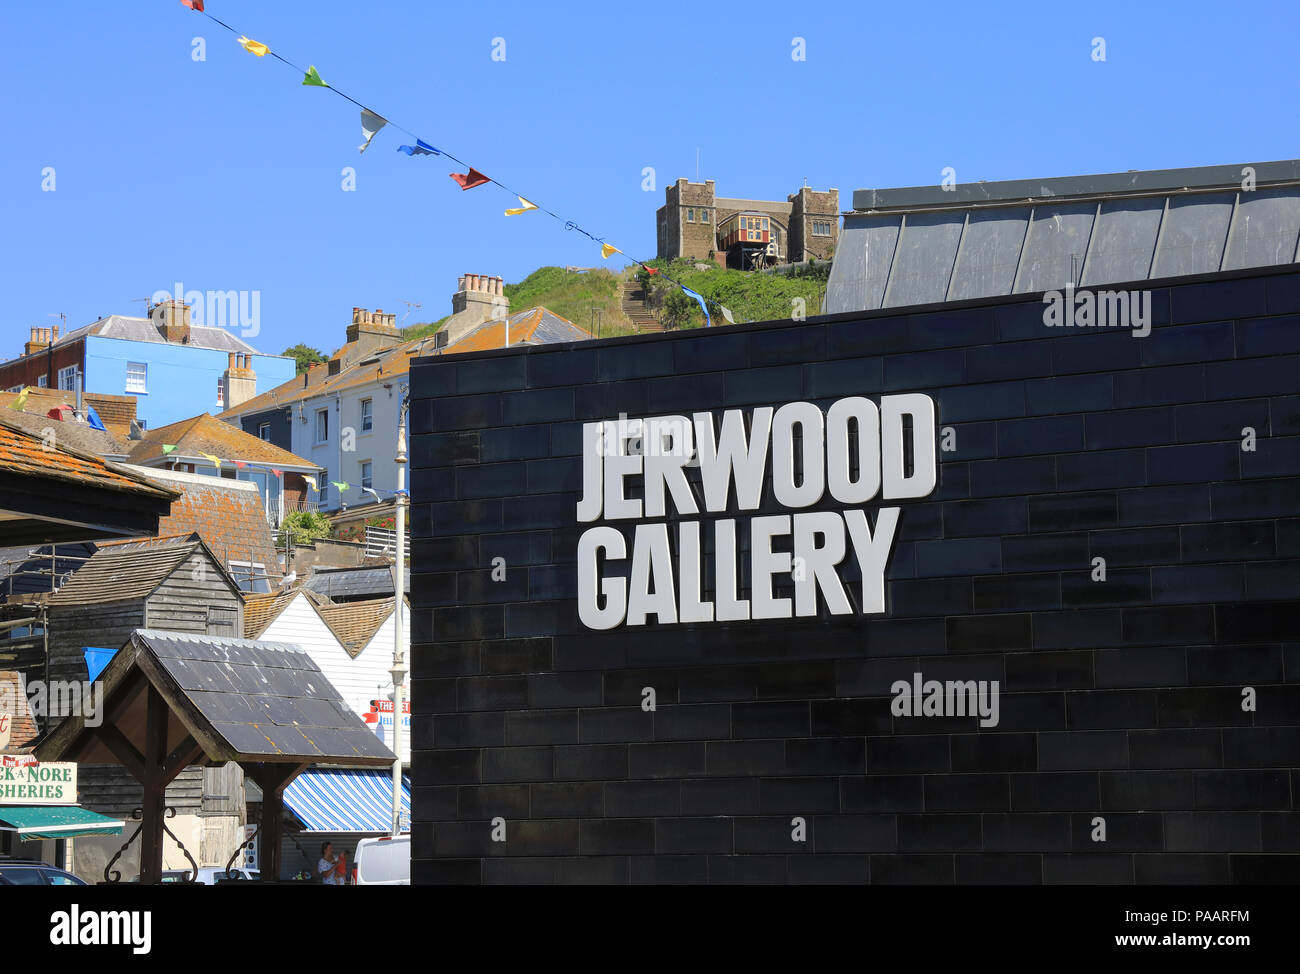 The award winning Jerwood Gallery, a museum of contemporary British art, located on The Stade, in Hastings, East Sussex, UK - Stock Image